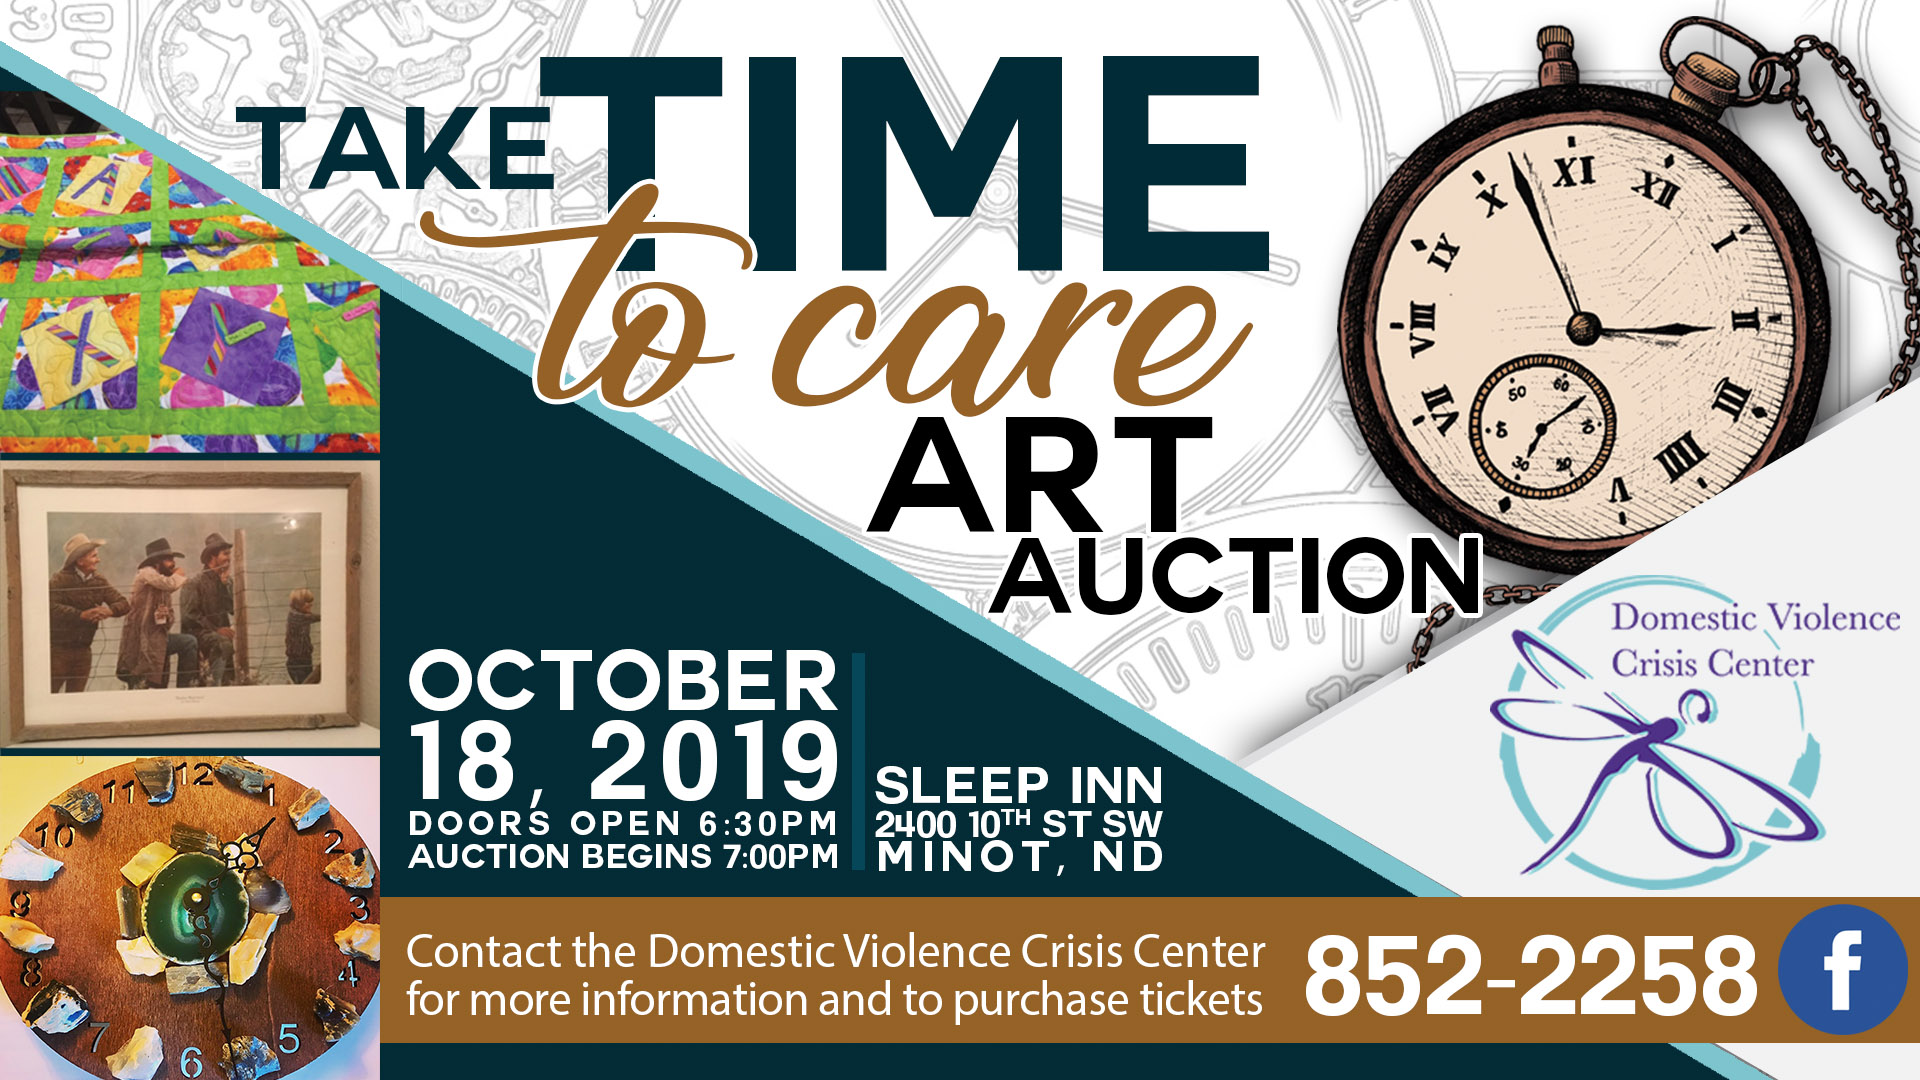 Take Time To Care Art Auction